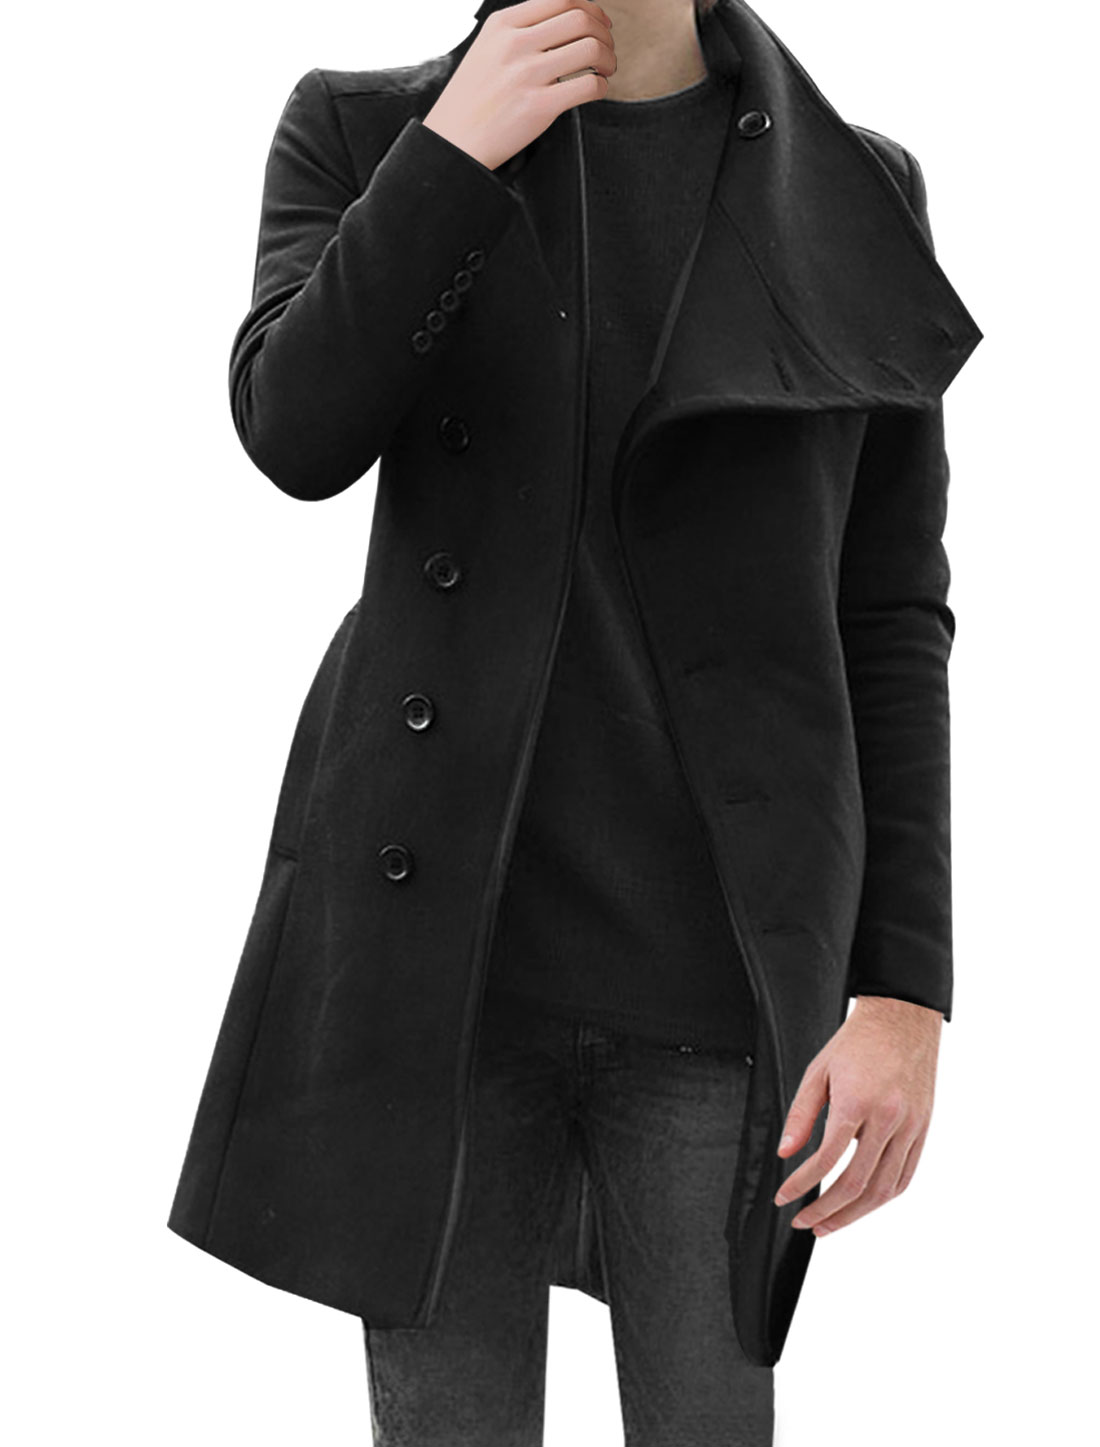 Mens Black Stylish Convertible Collar Long Sleeve Single Breasted Slant Pockets Trench Coat M